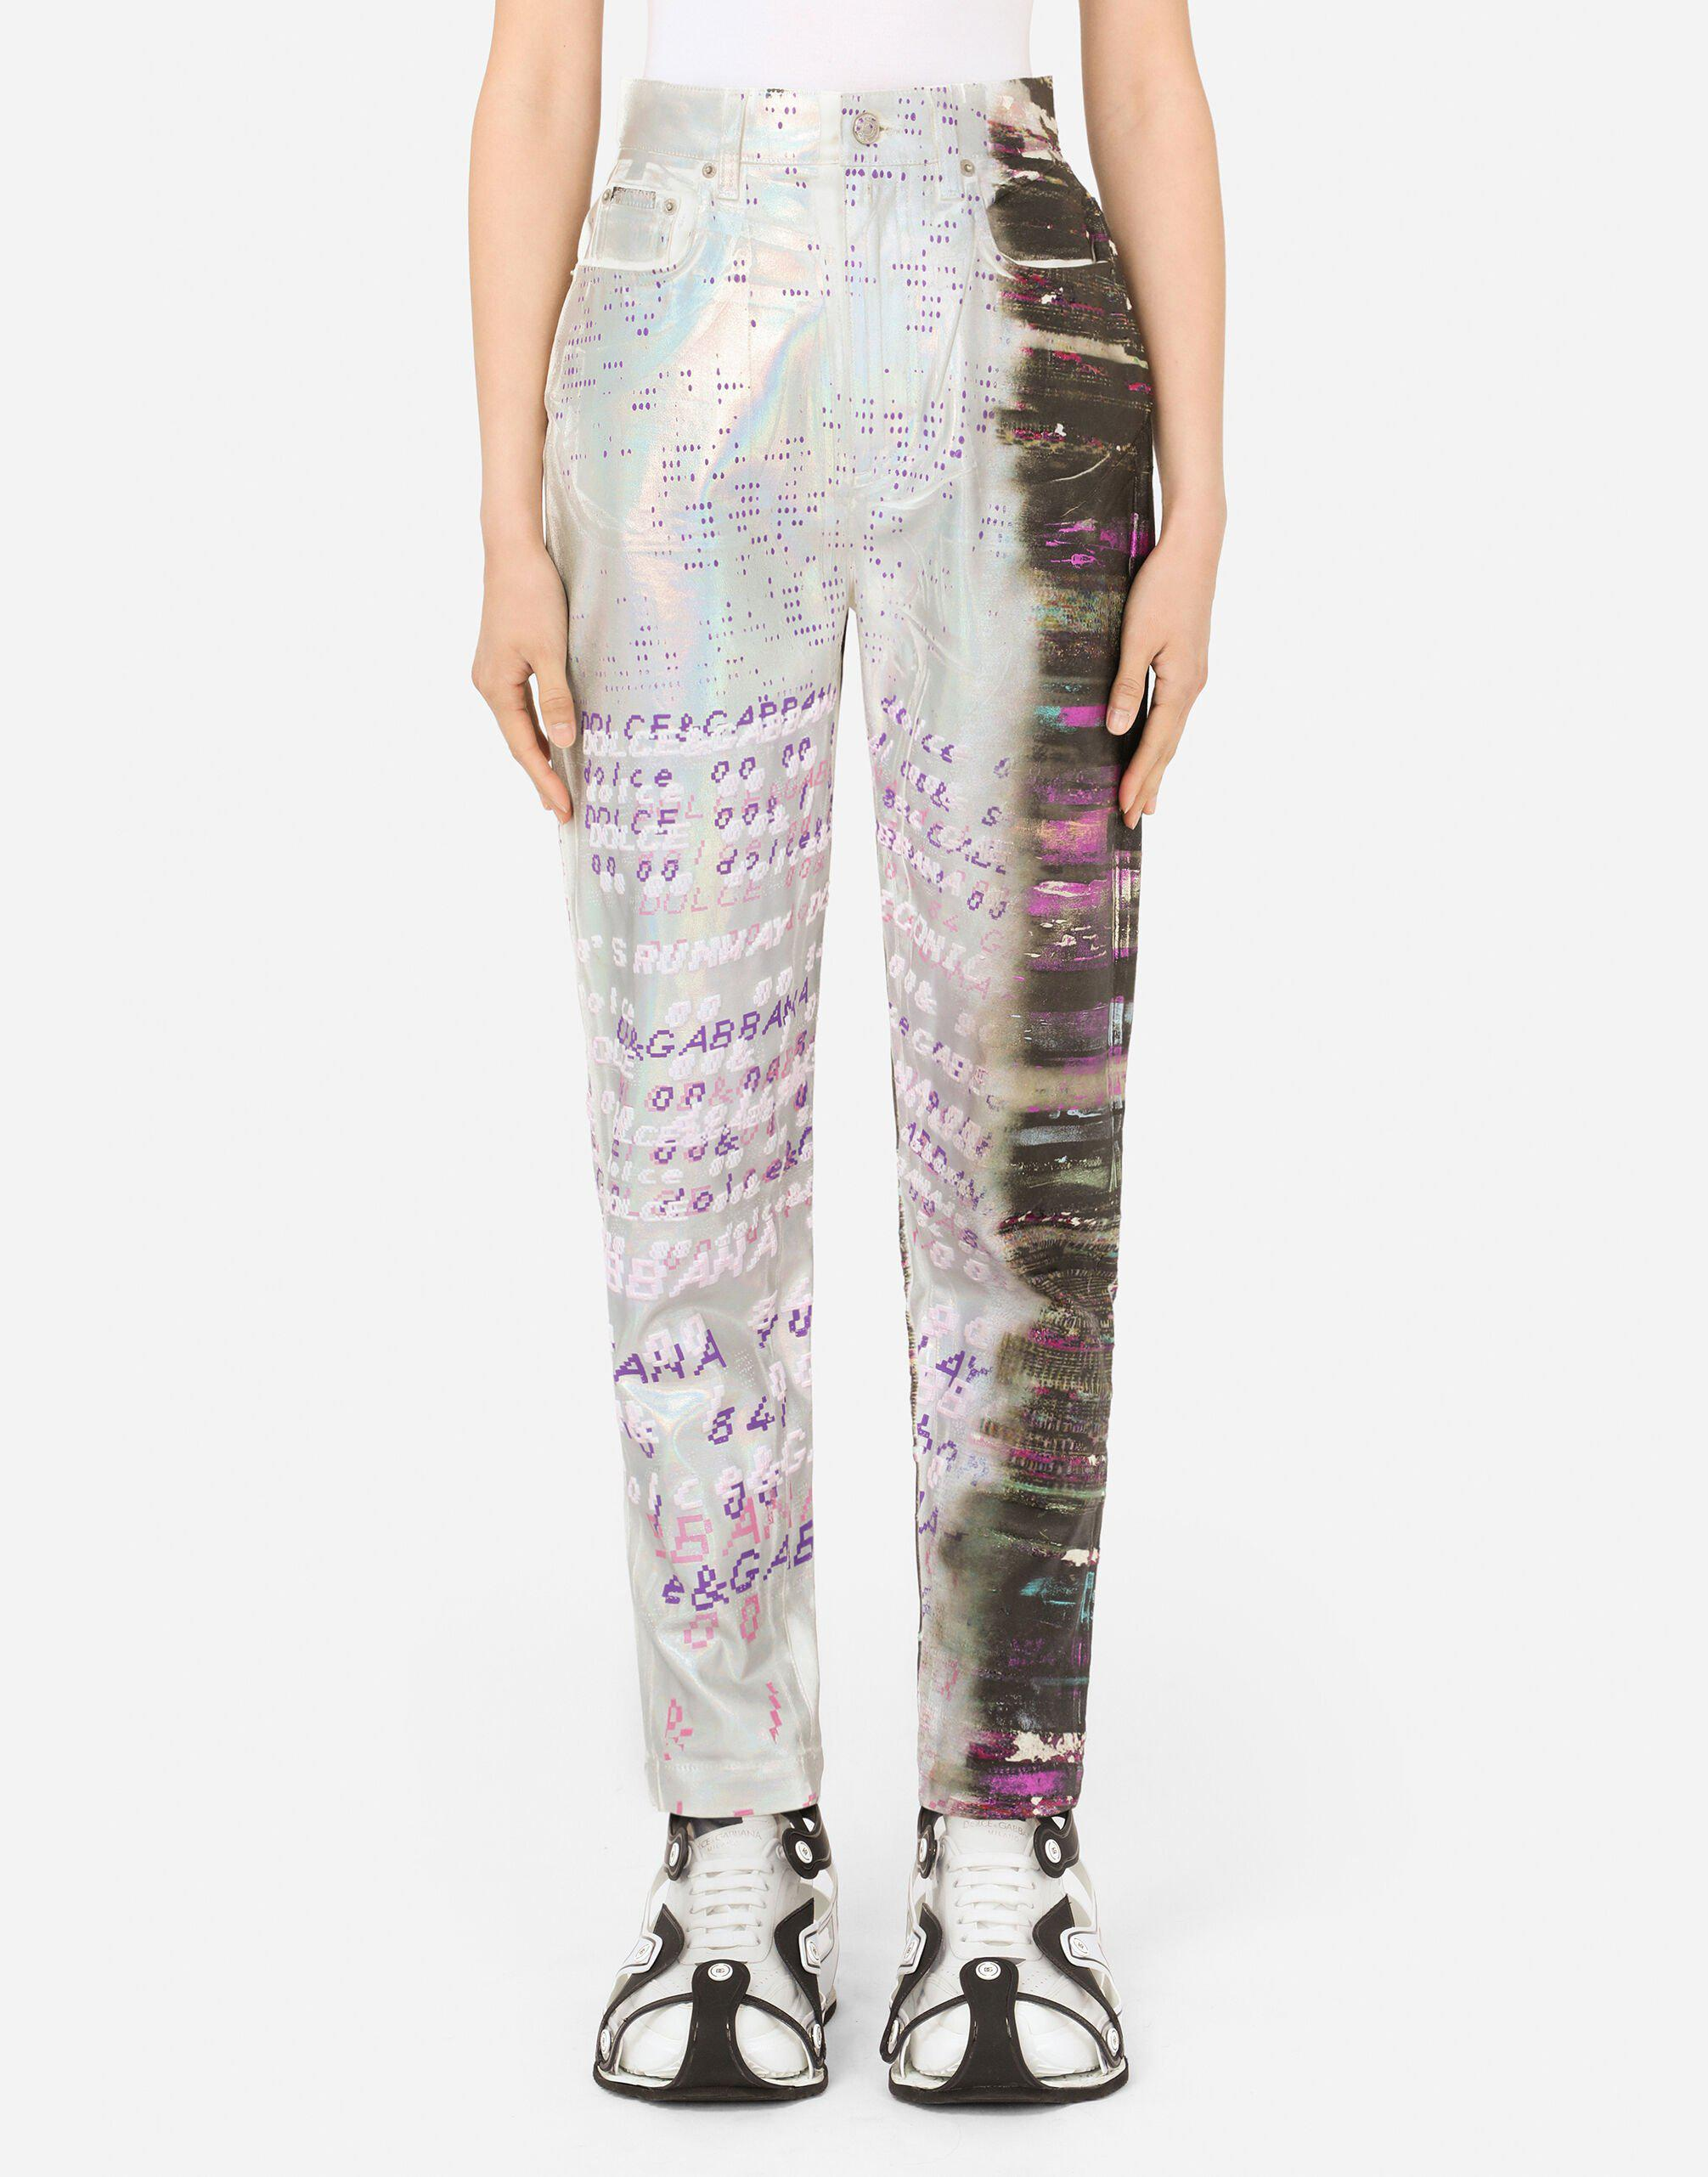 Foiled jeans with multi-colored glitch print